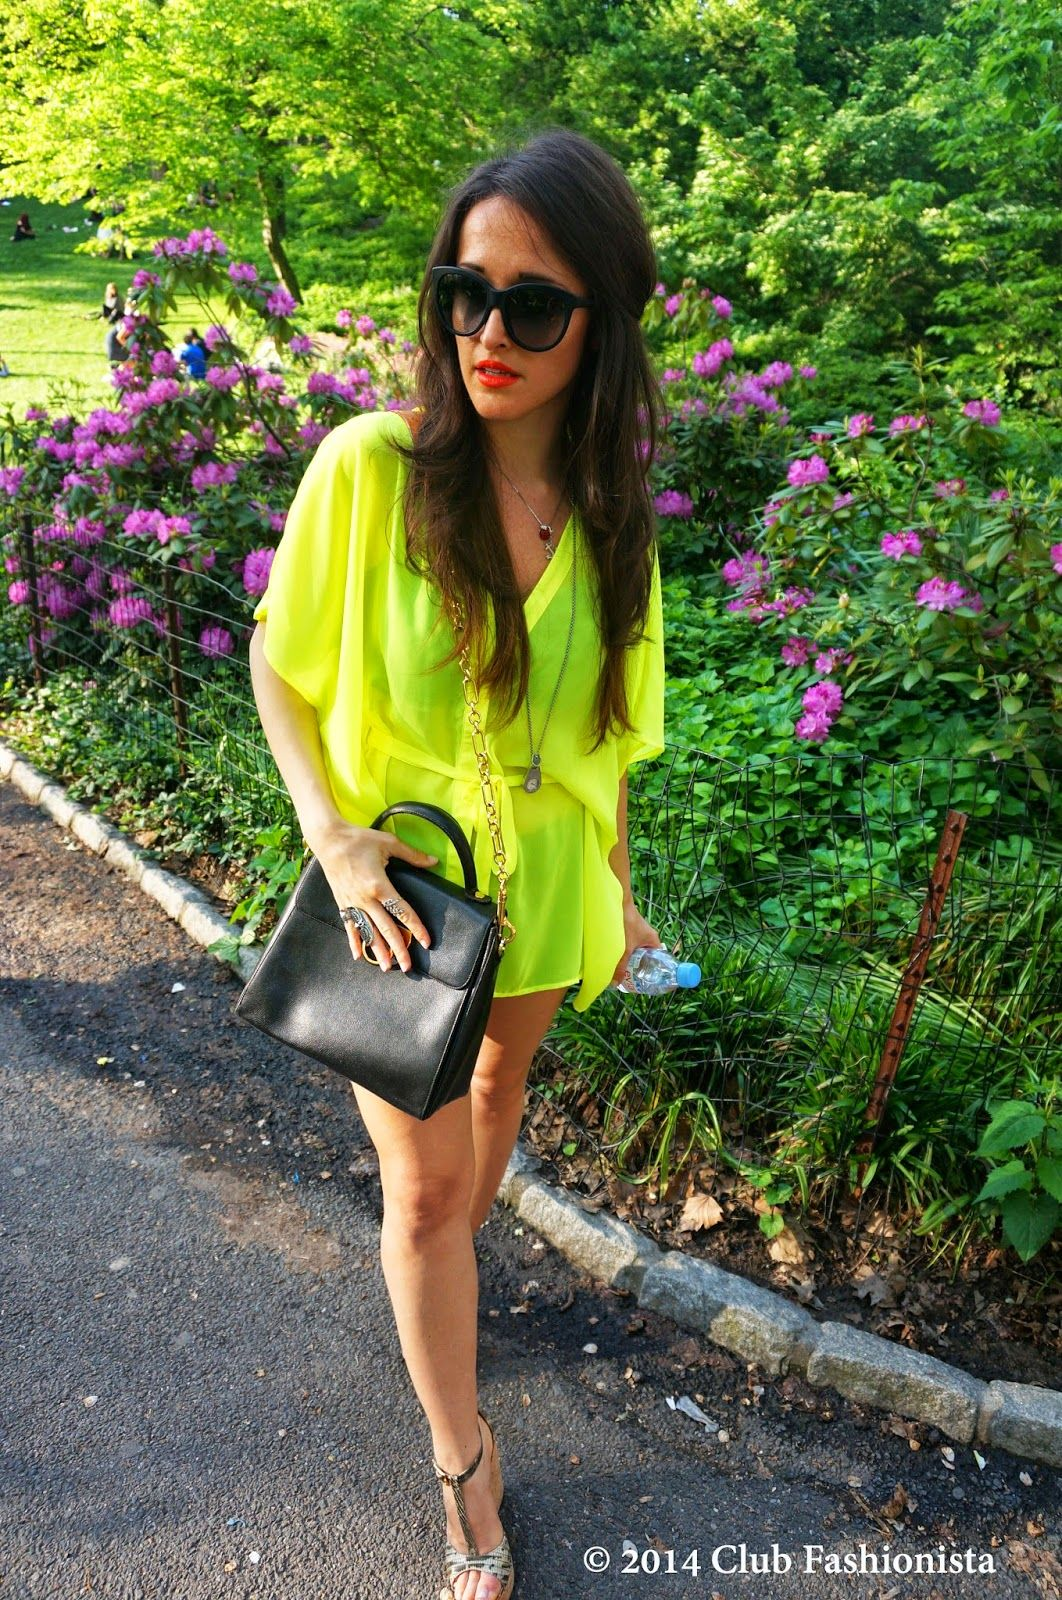 Styling tips--BEST neon outfits ideas: http://www.clubfashionista.com/2014/06/fashion-trends-pop-of-neon.html  #clubfashionista #ootd #style #fashionista #neoncolors #fashion